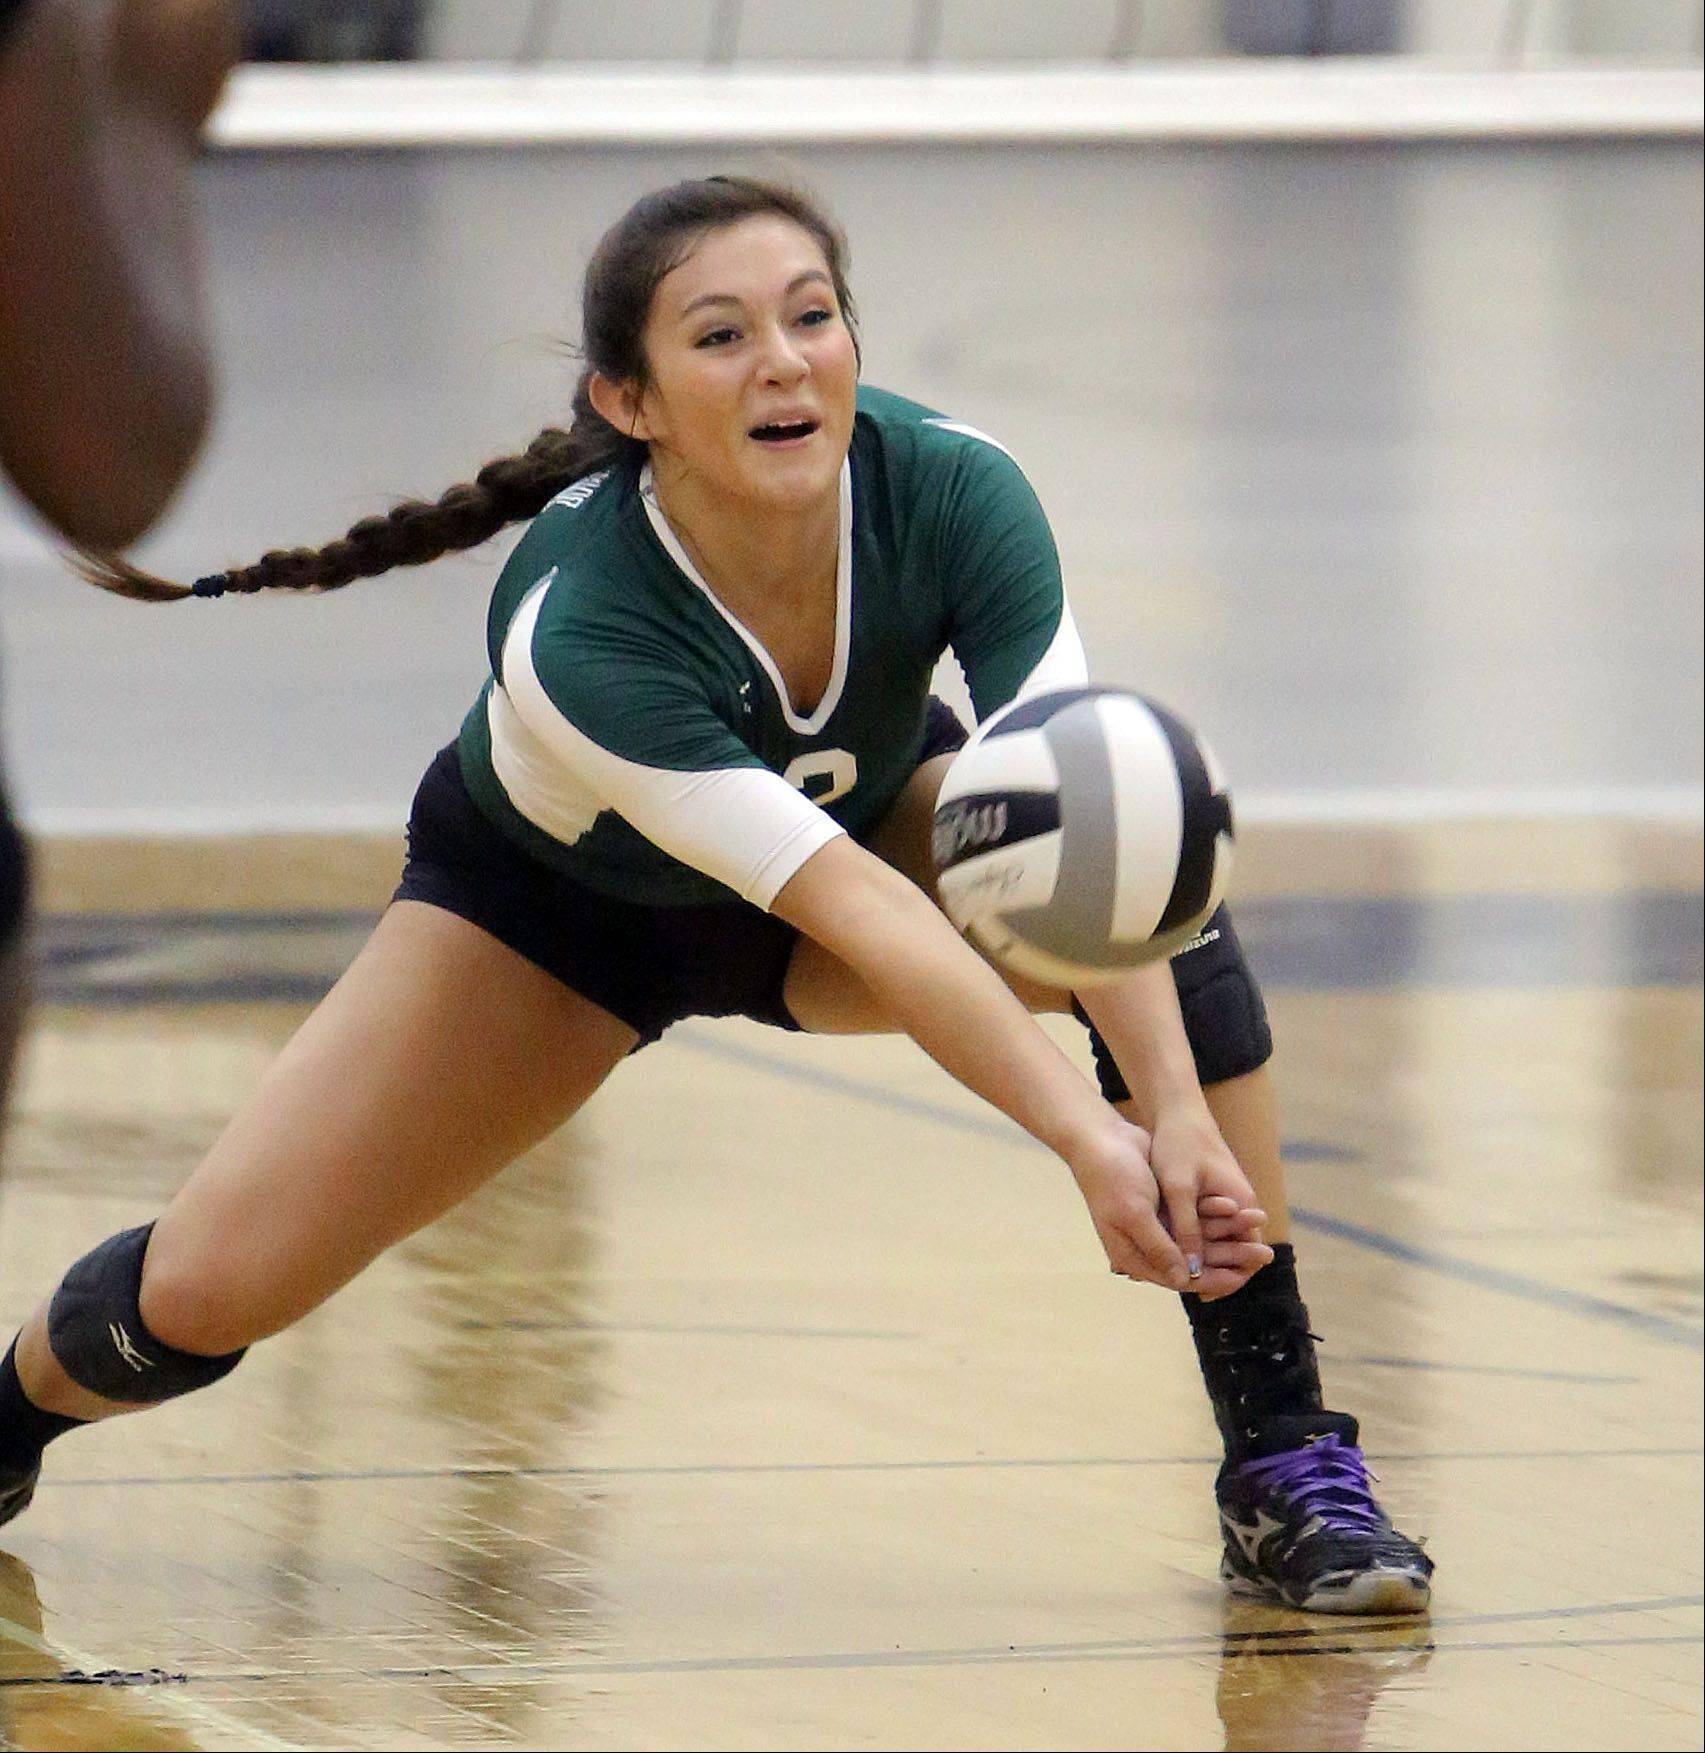 Grayslake Central's Gabi Casper digs out a serve Tuesday at Grayslake North.